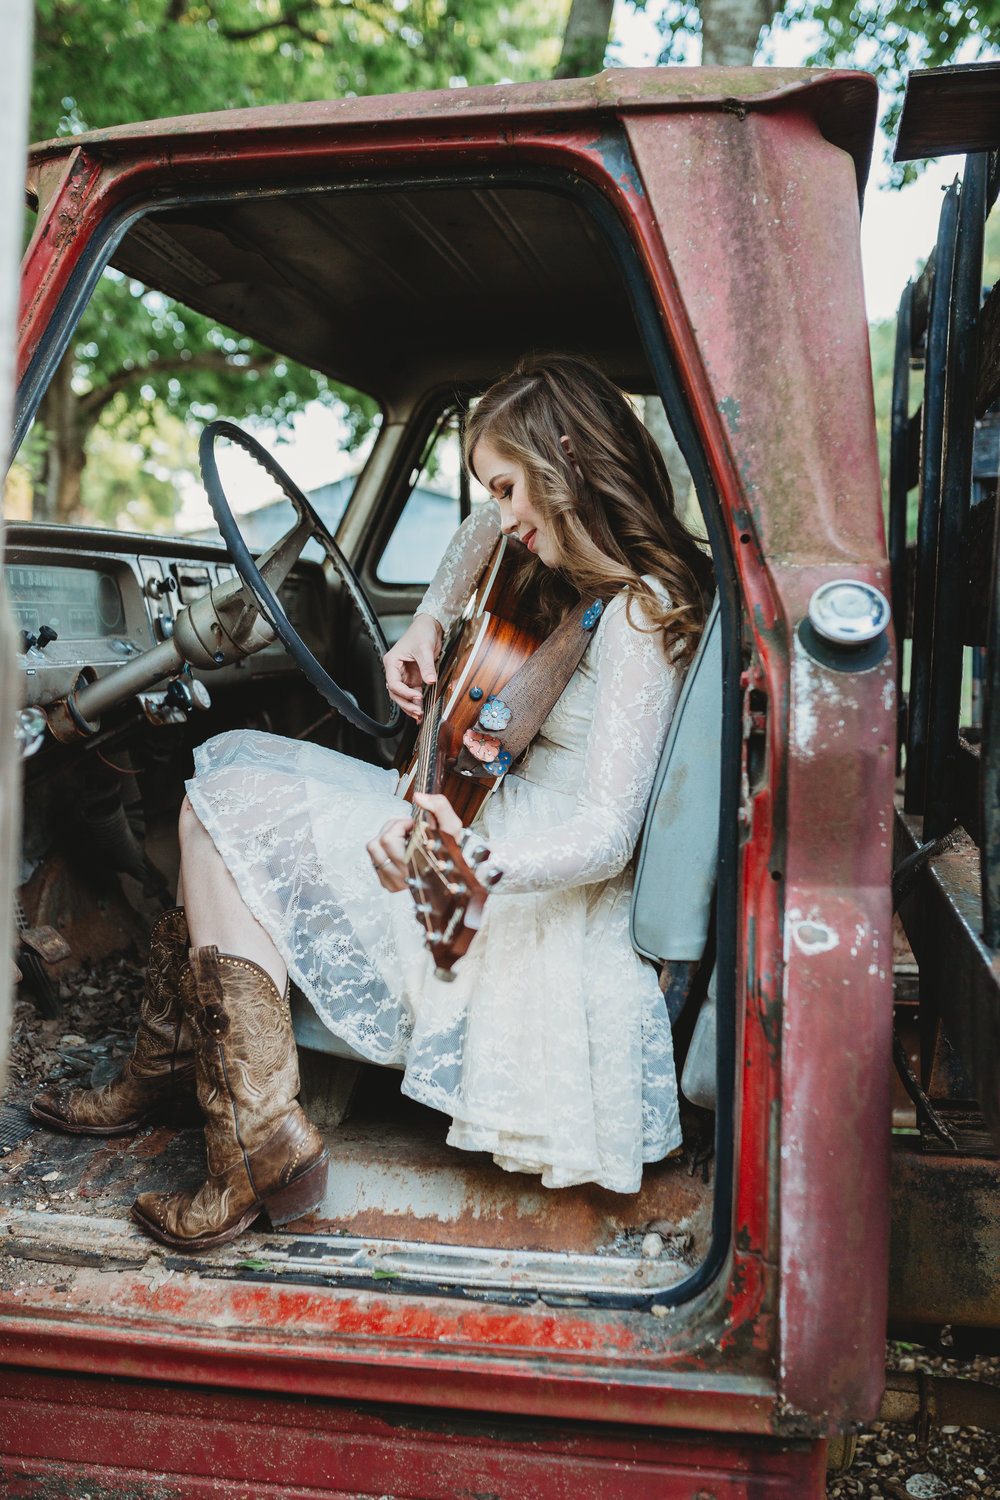 Austin recording artist Bethany Becker is the opening act Saturday during the annual Craft Beer and Wine Festival. Bethany is set to perform at 2 p.m.